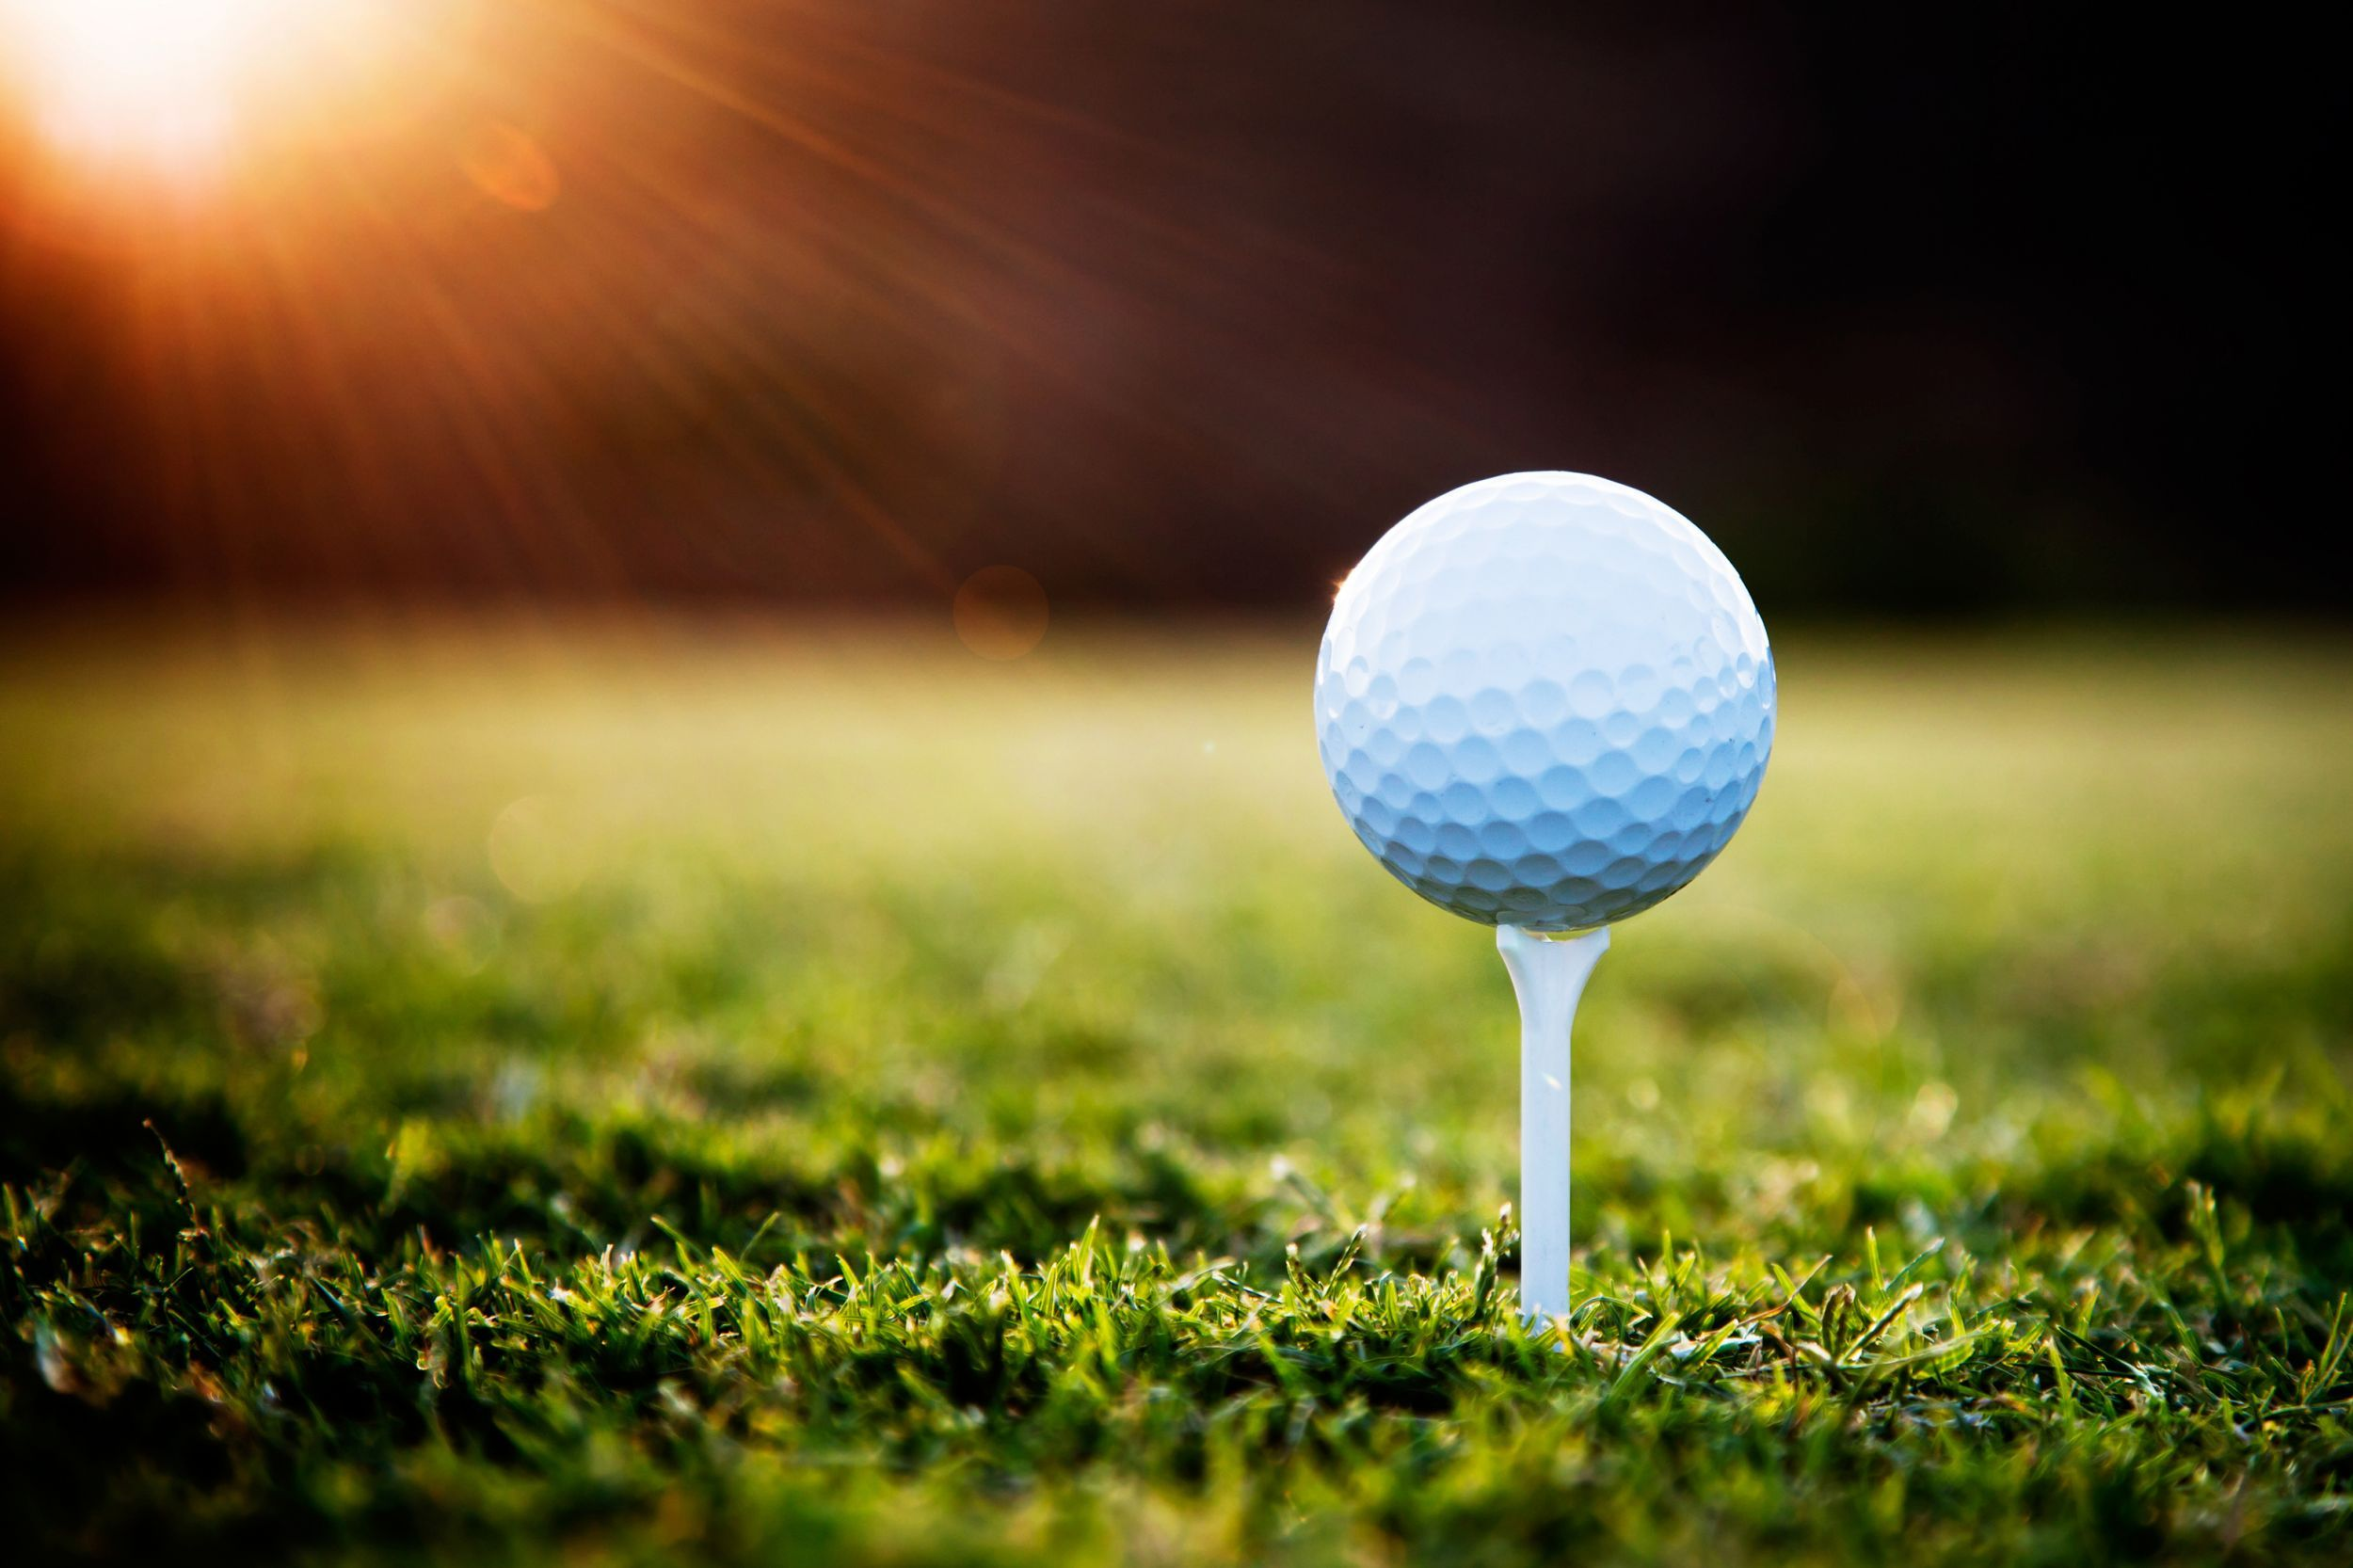 golf images high resolution